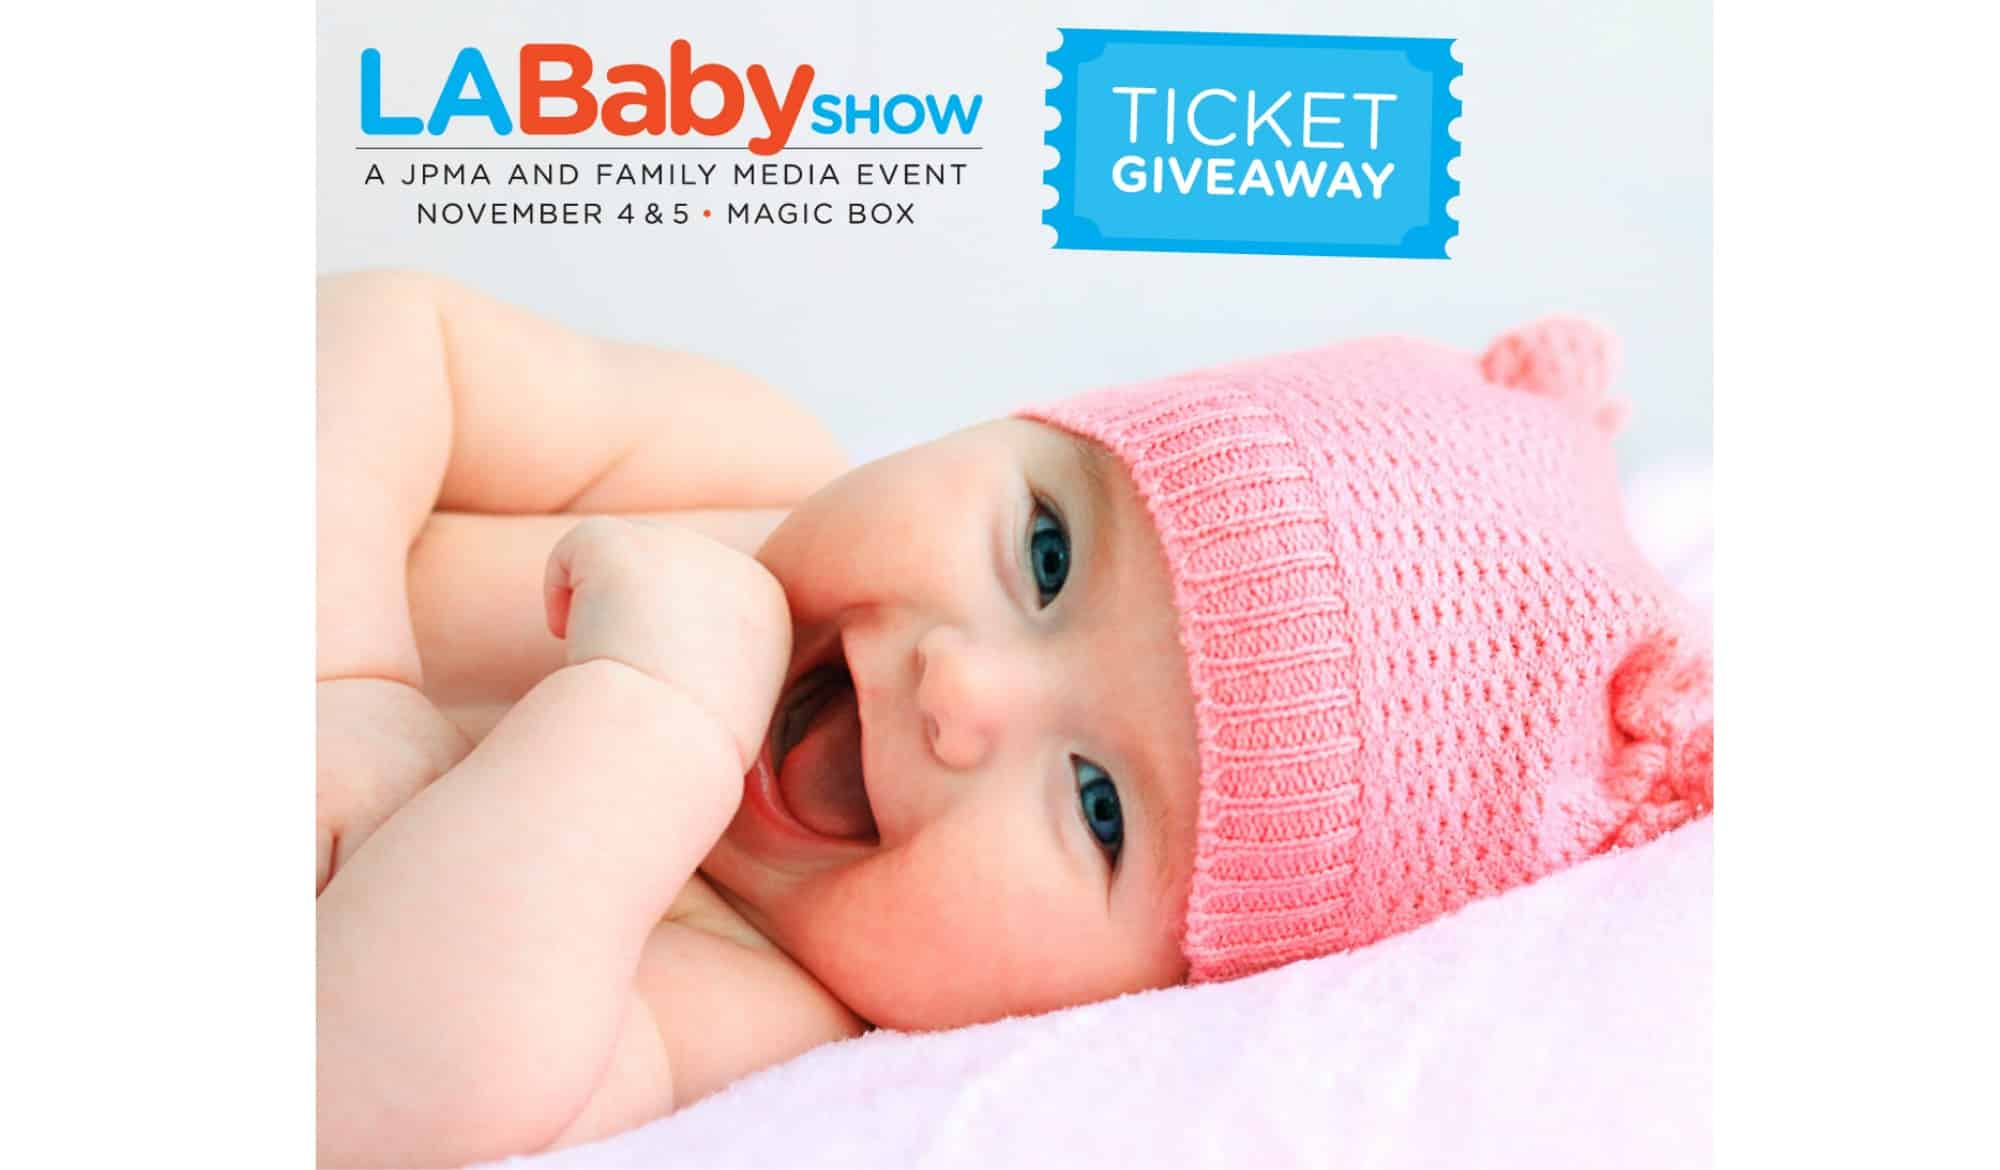 See You At The LA Baby Show!